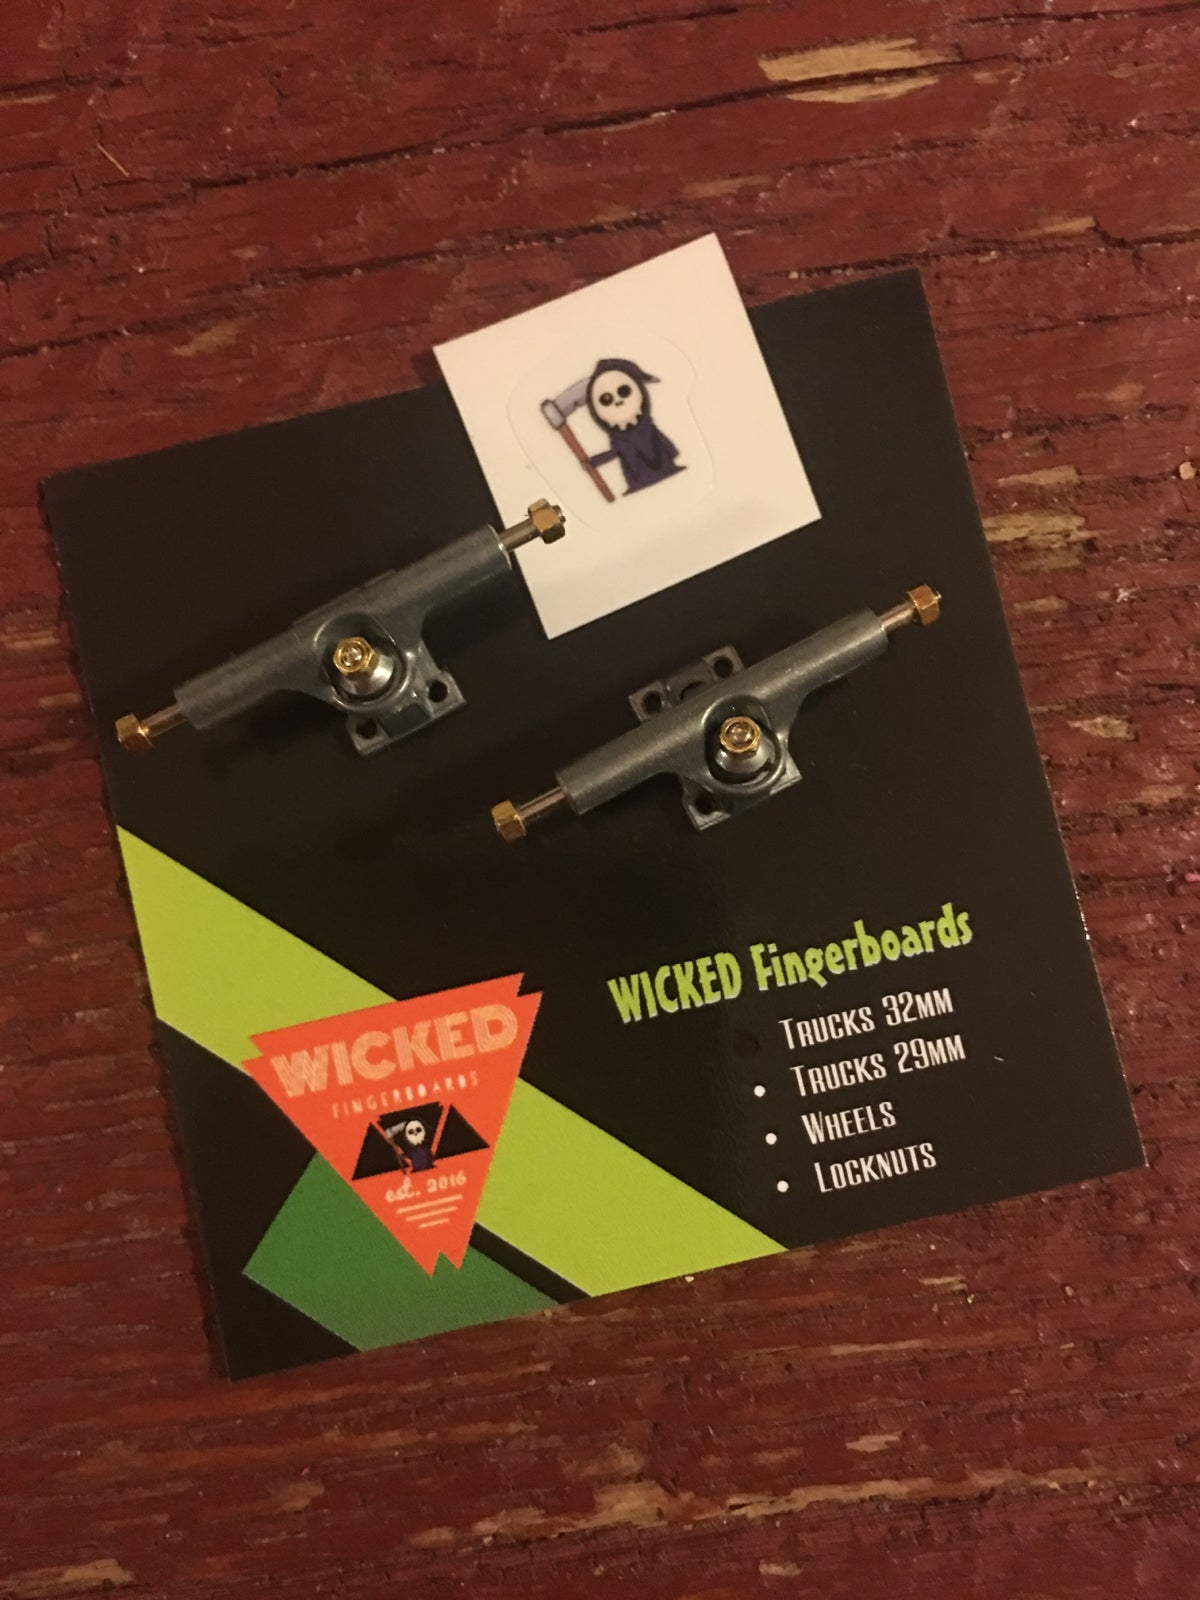 Wicked 32mm Trucks aka TDLBs!!!!!!!!!!